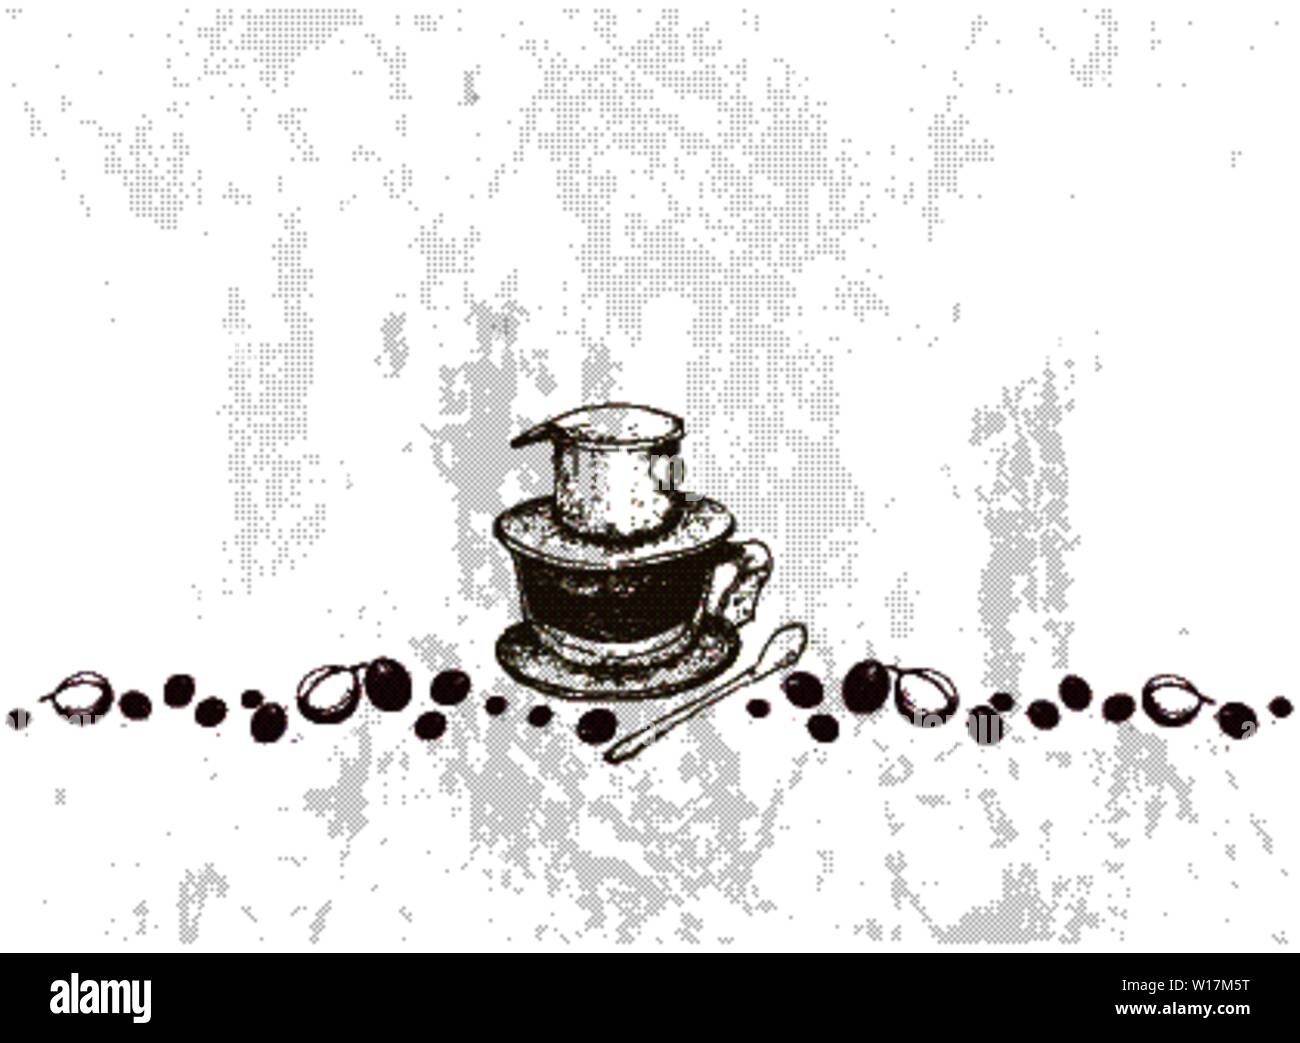 Illustration Hand Drawn Sketch of Coffee Beans with Vietnam Coffee Dripper, A Vietnamese Traditional Coffeemaker. Stock Vector